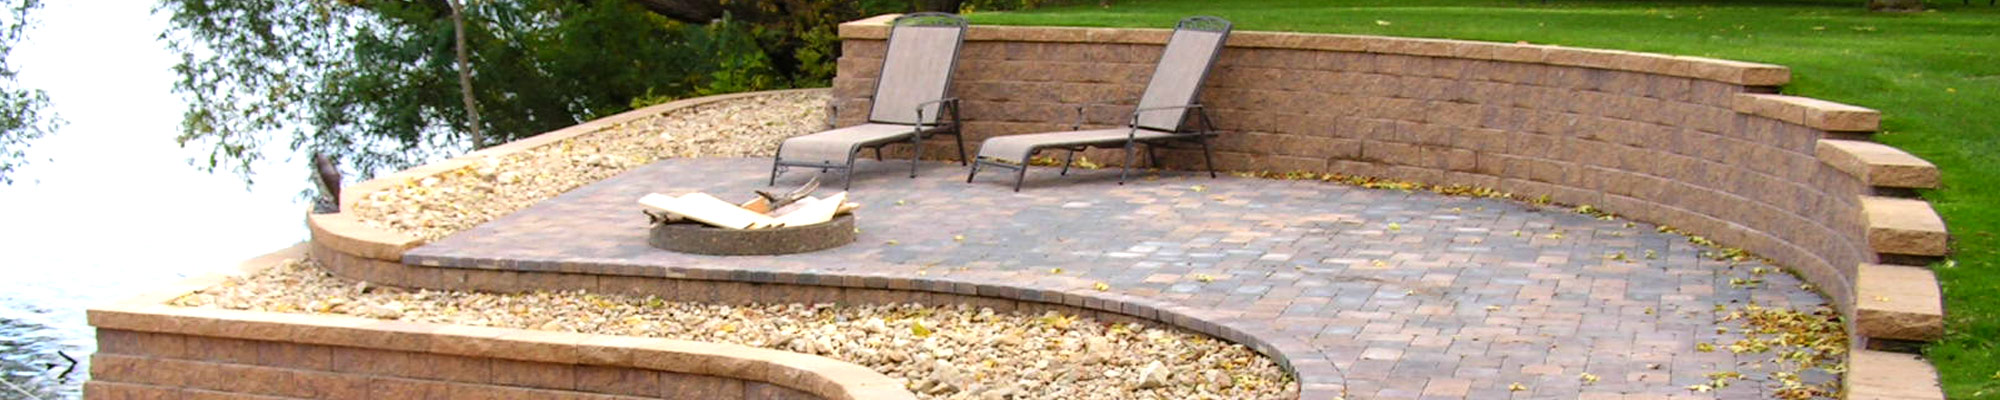 Outdoor living space located along the lakeshore and created using brick patio pavers, multi-tiered retaining walls, and landscape rock